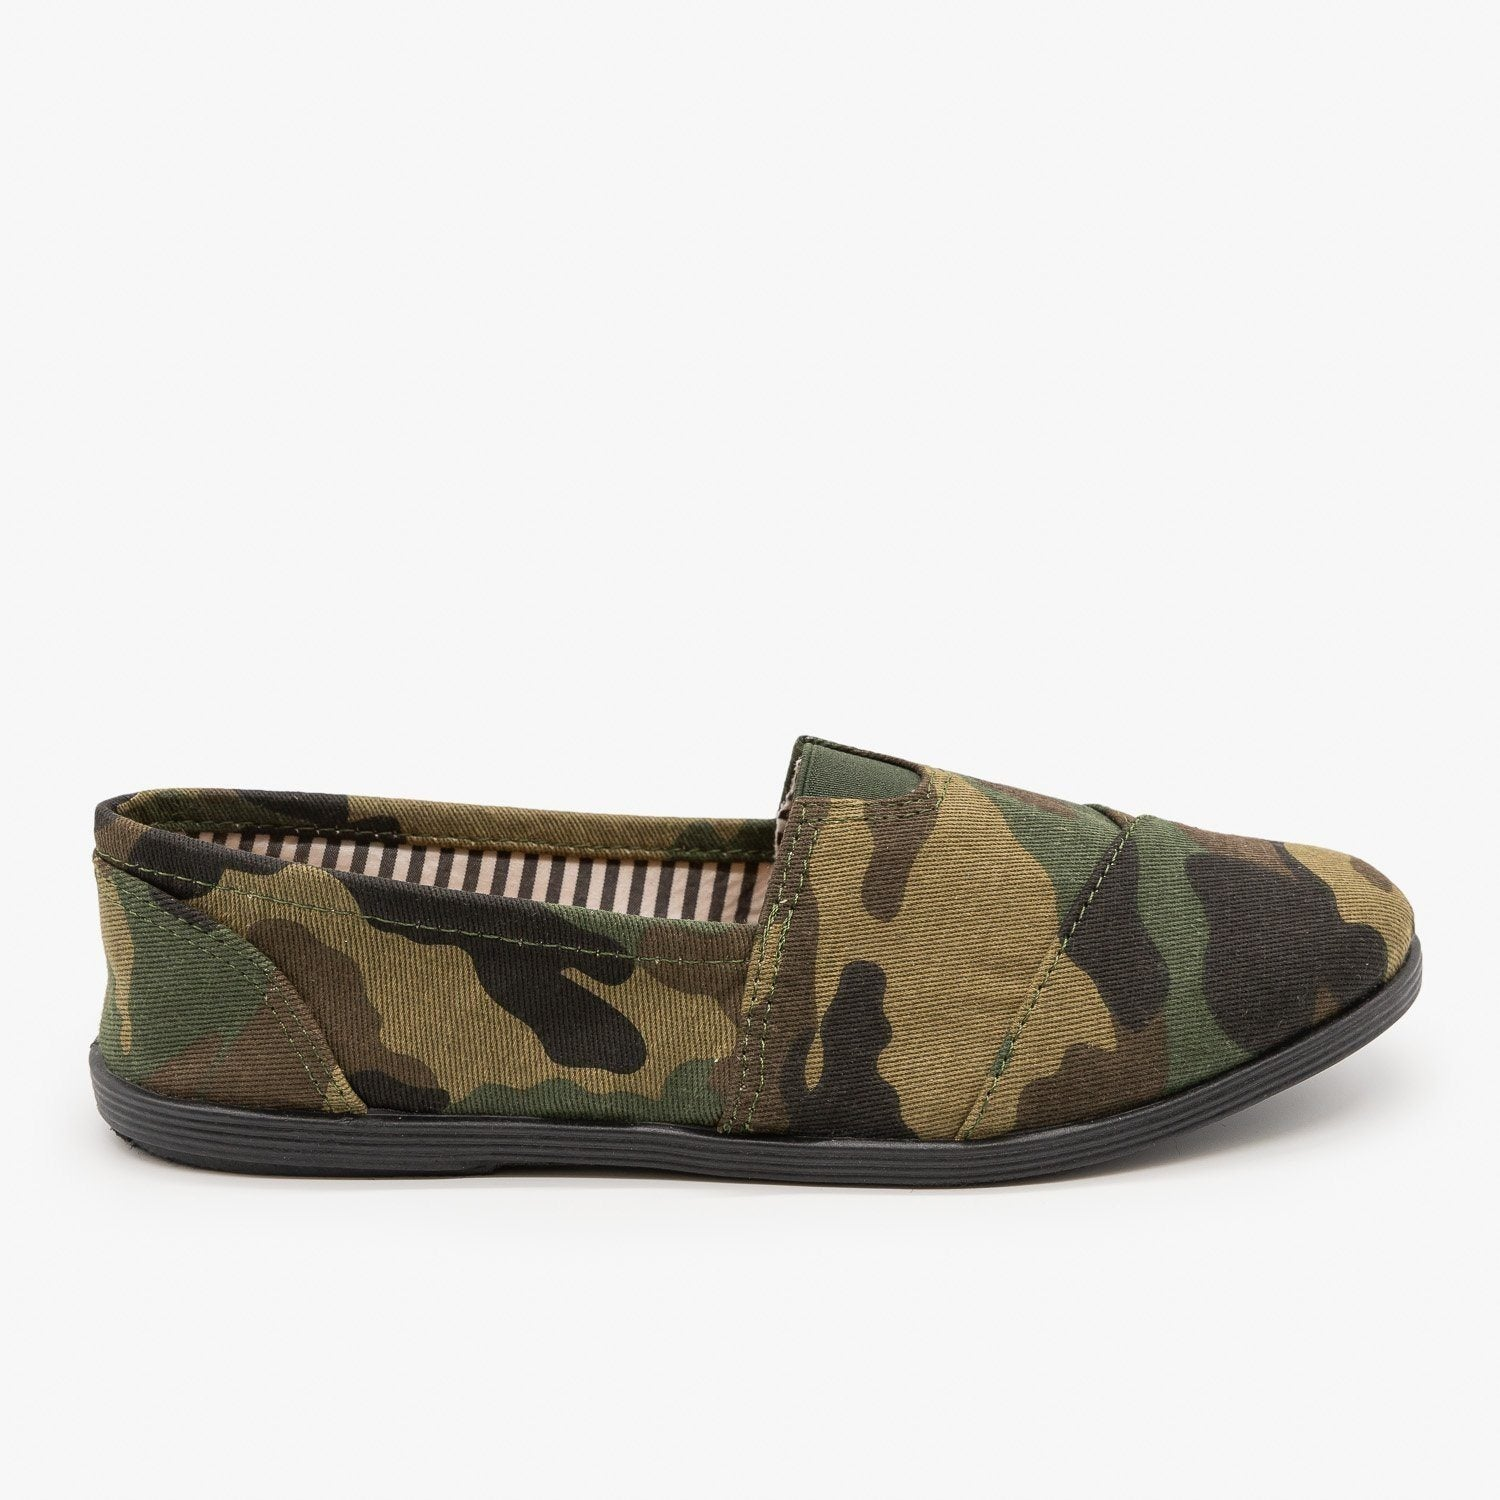 Canvas Slip-On Flats - Forever Shoes